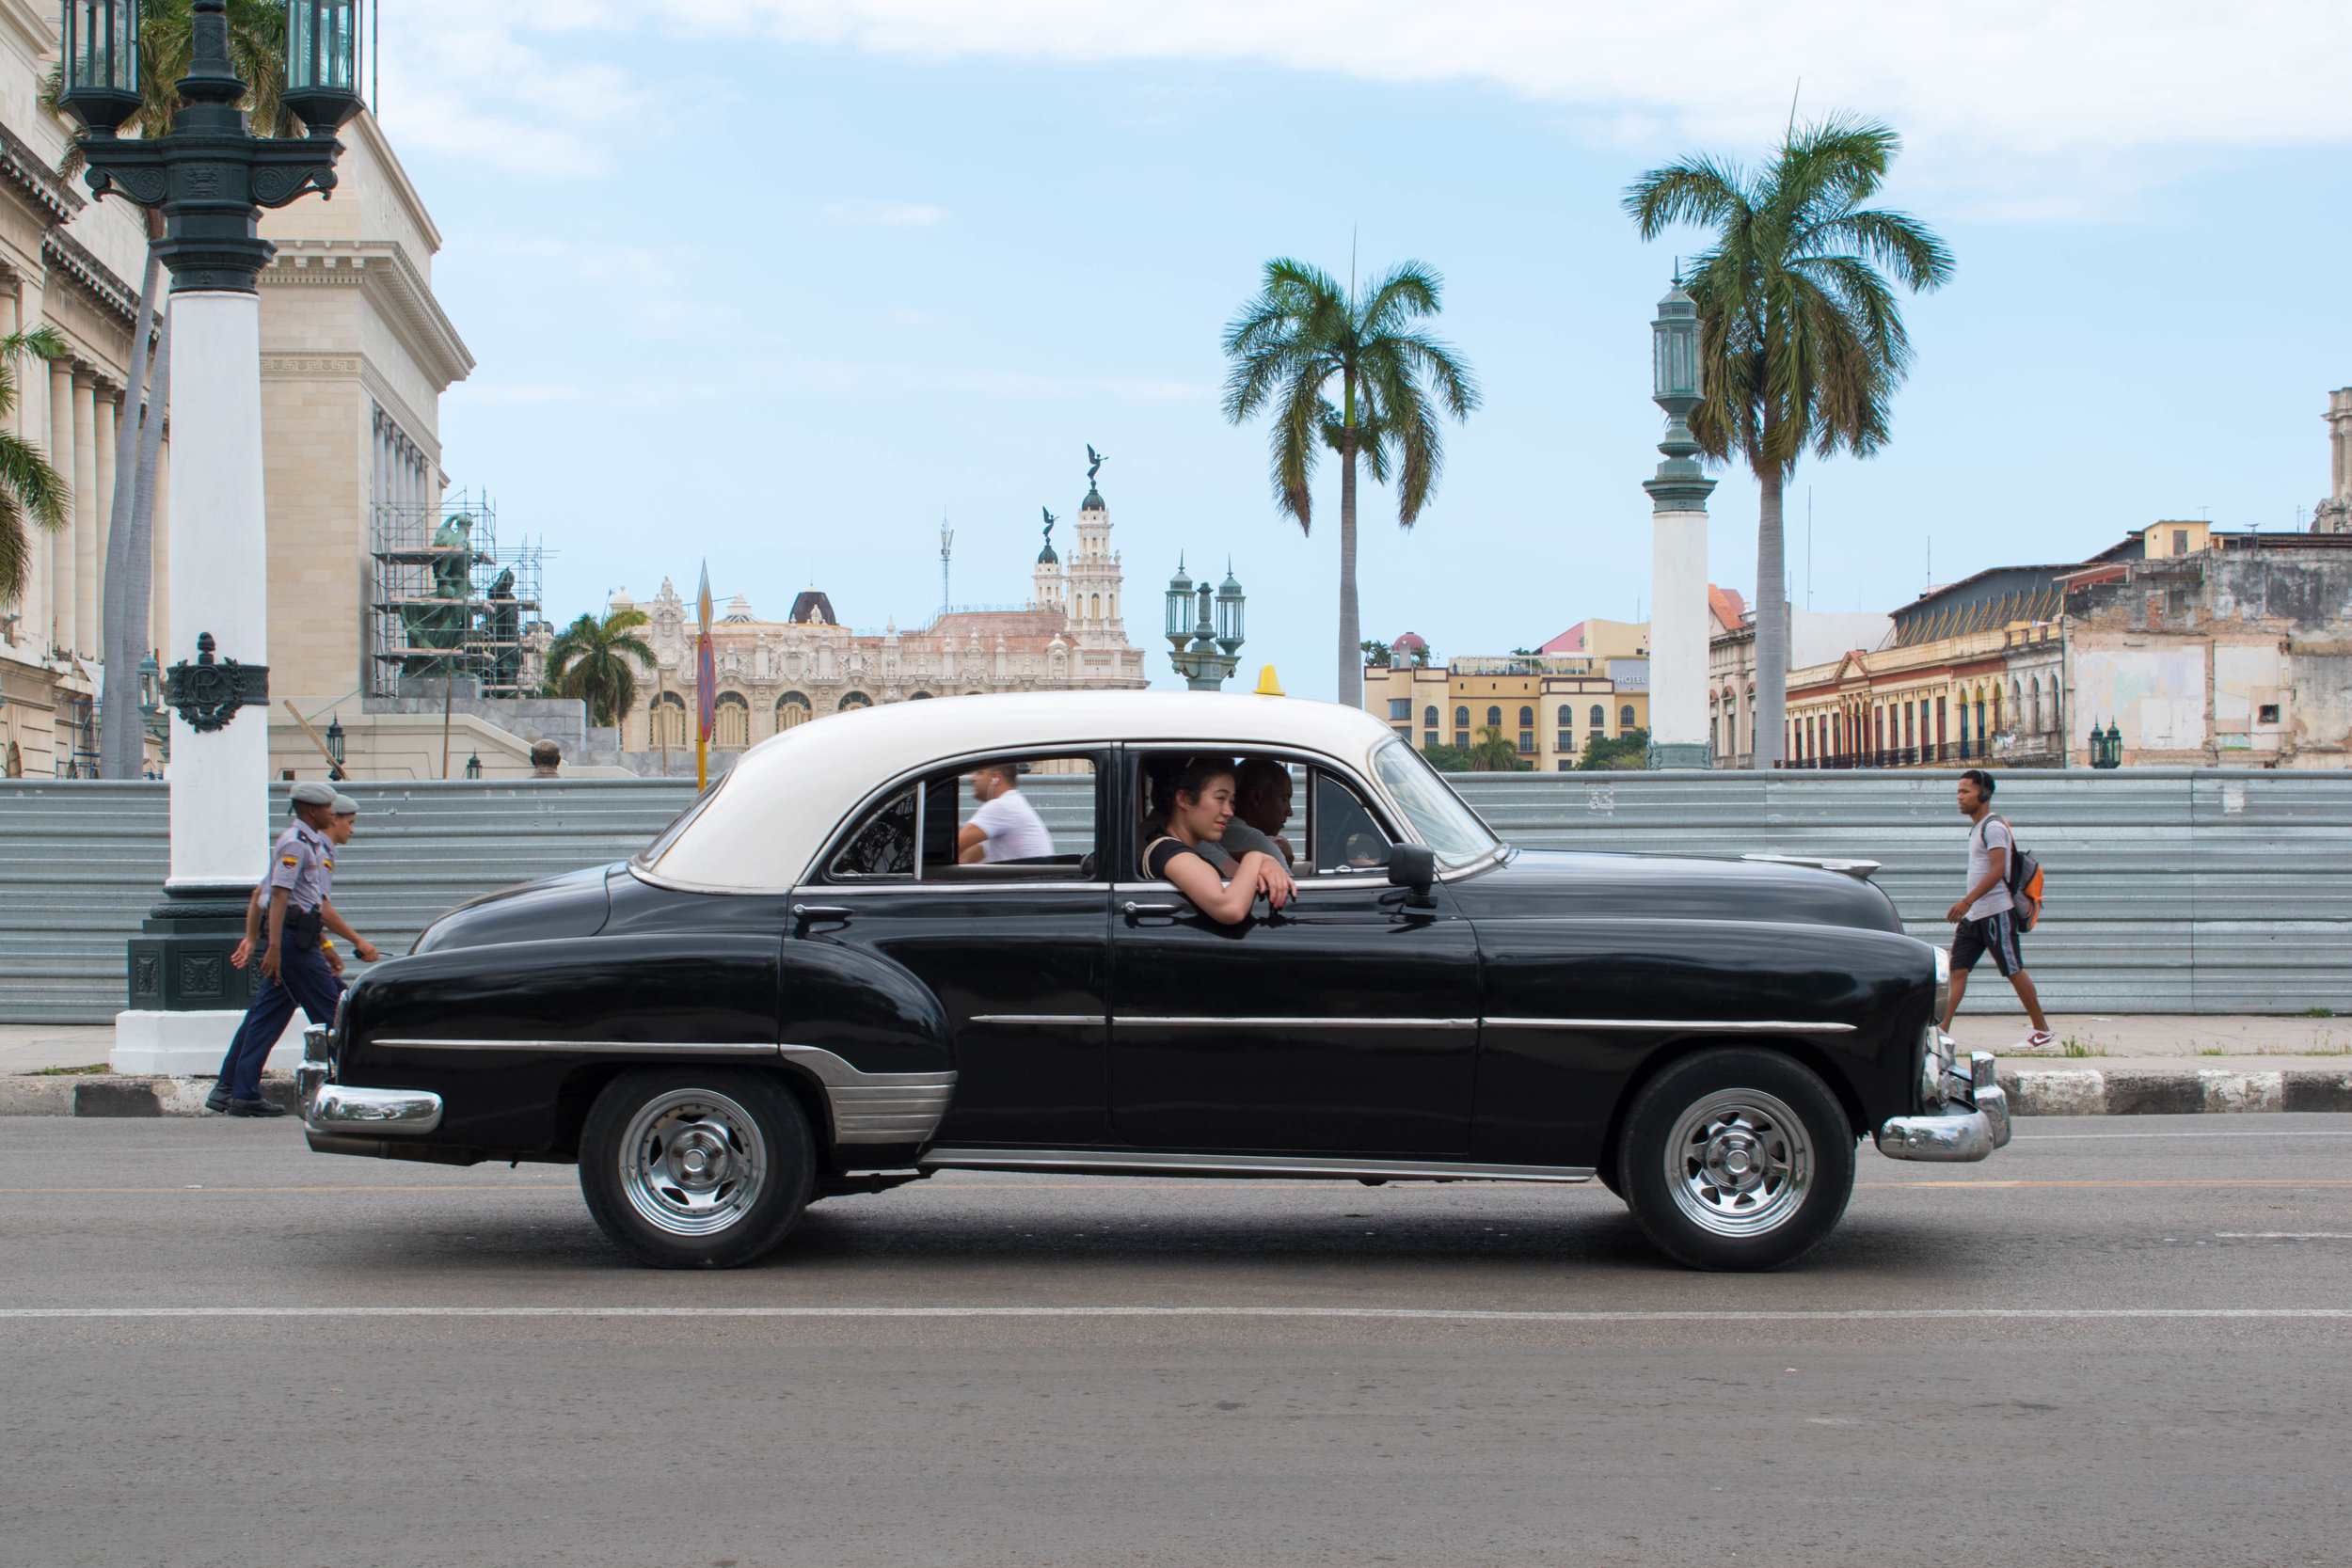 Locals Are Obliged To Pick Up Any Hitchhikers, Havana, Cuba